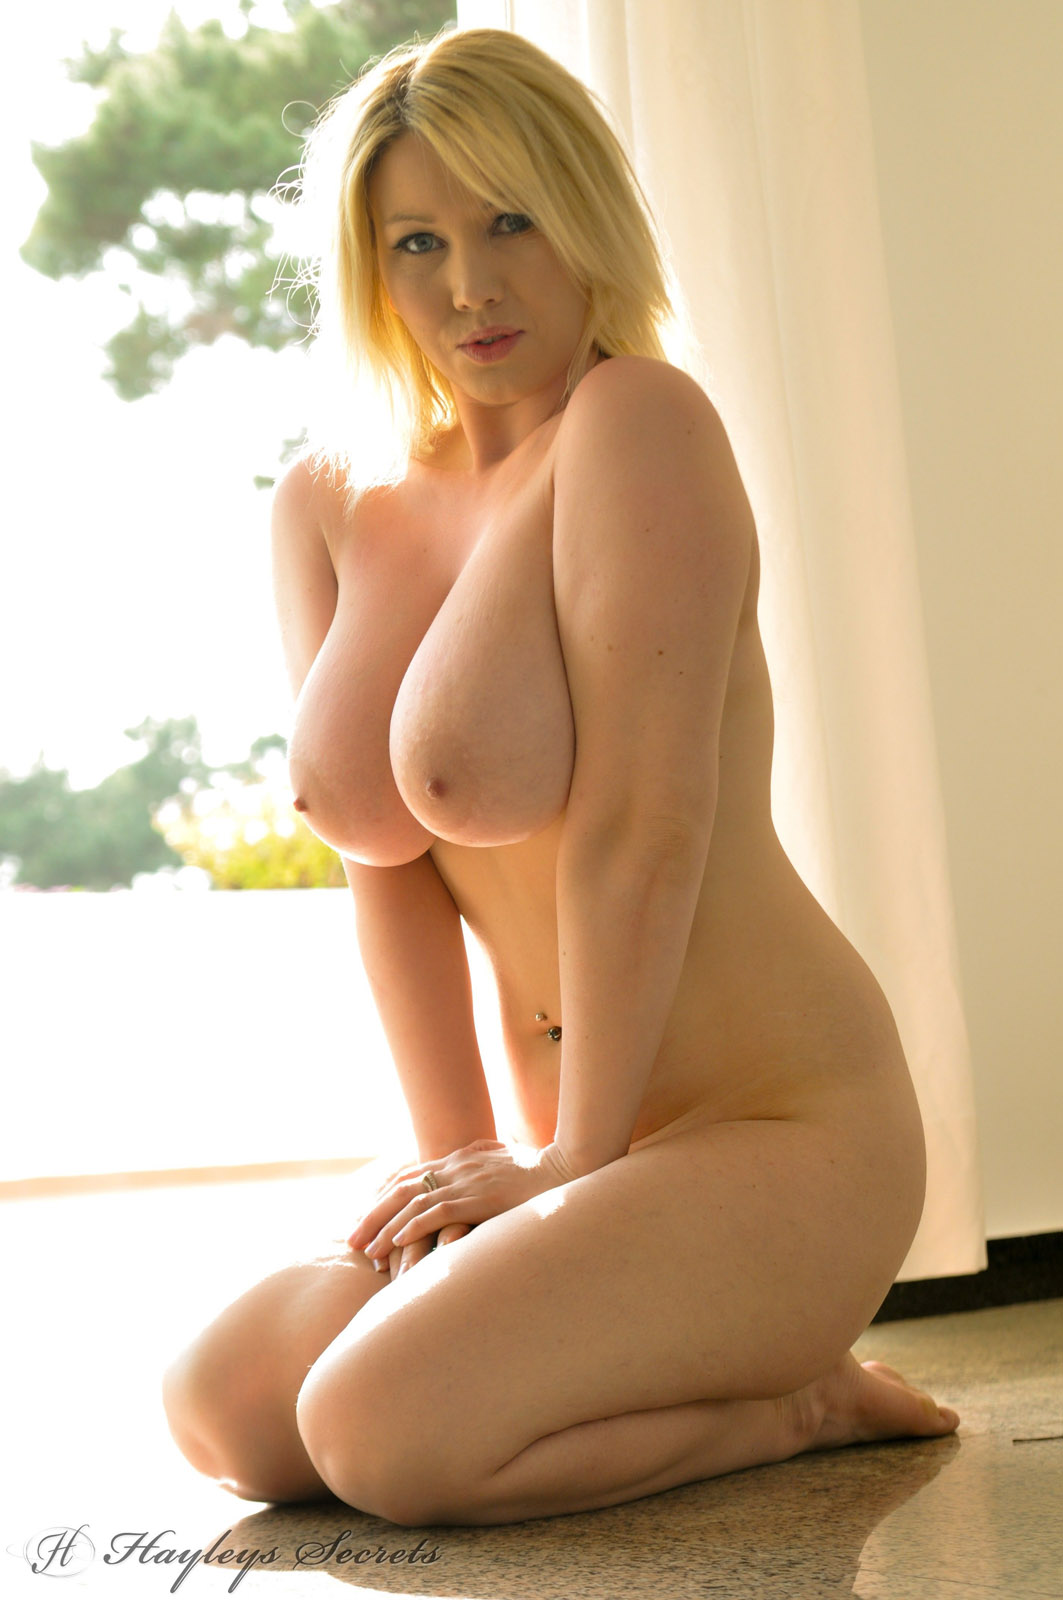 Hot curvy blonde pics, alan colmes wife jocelyn picture